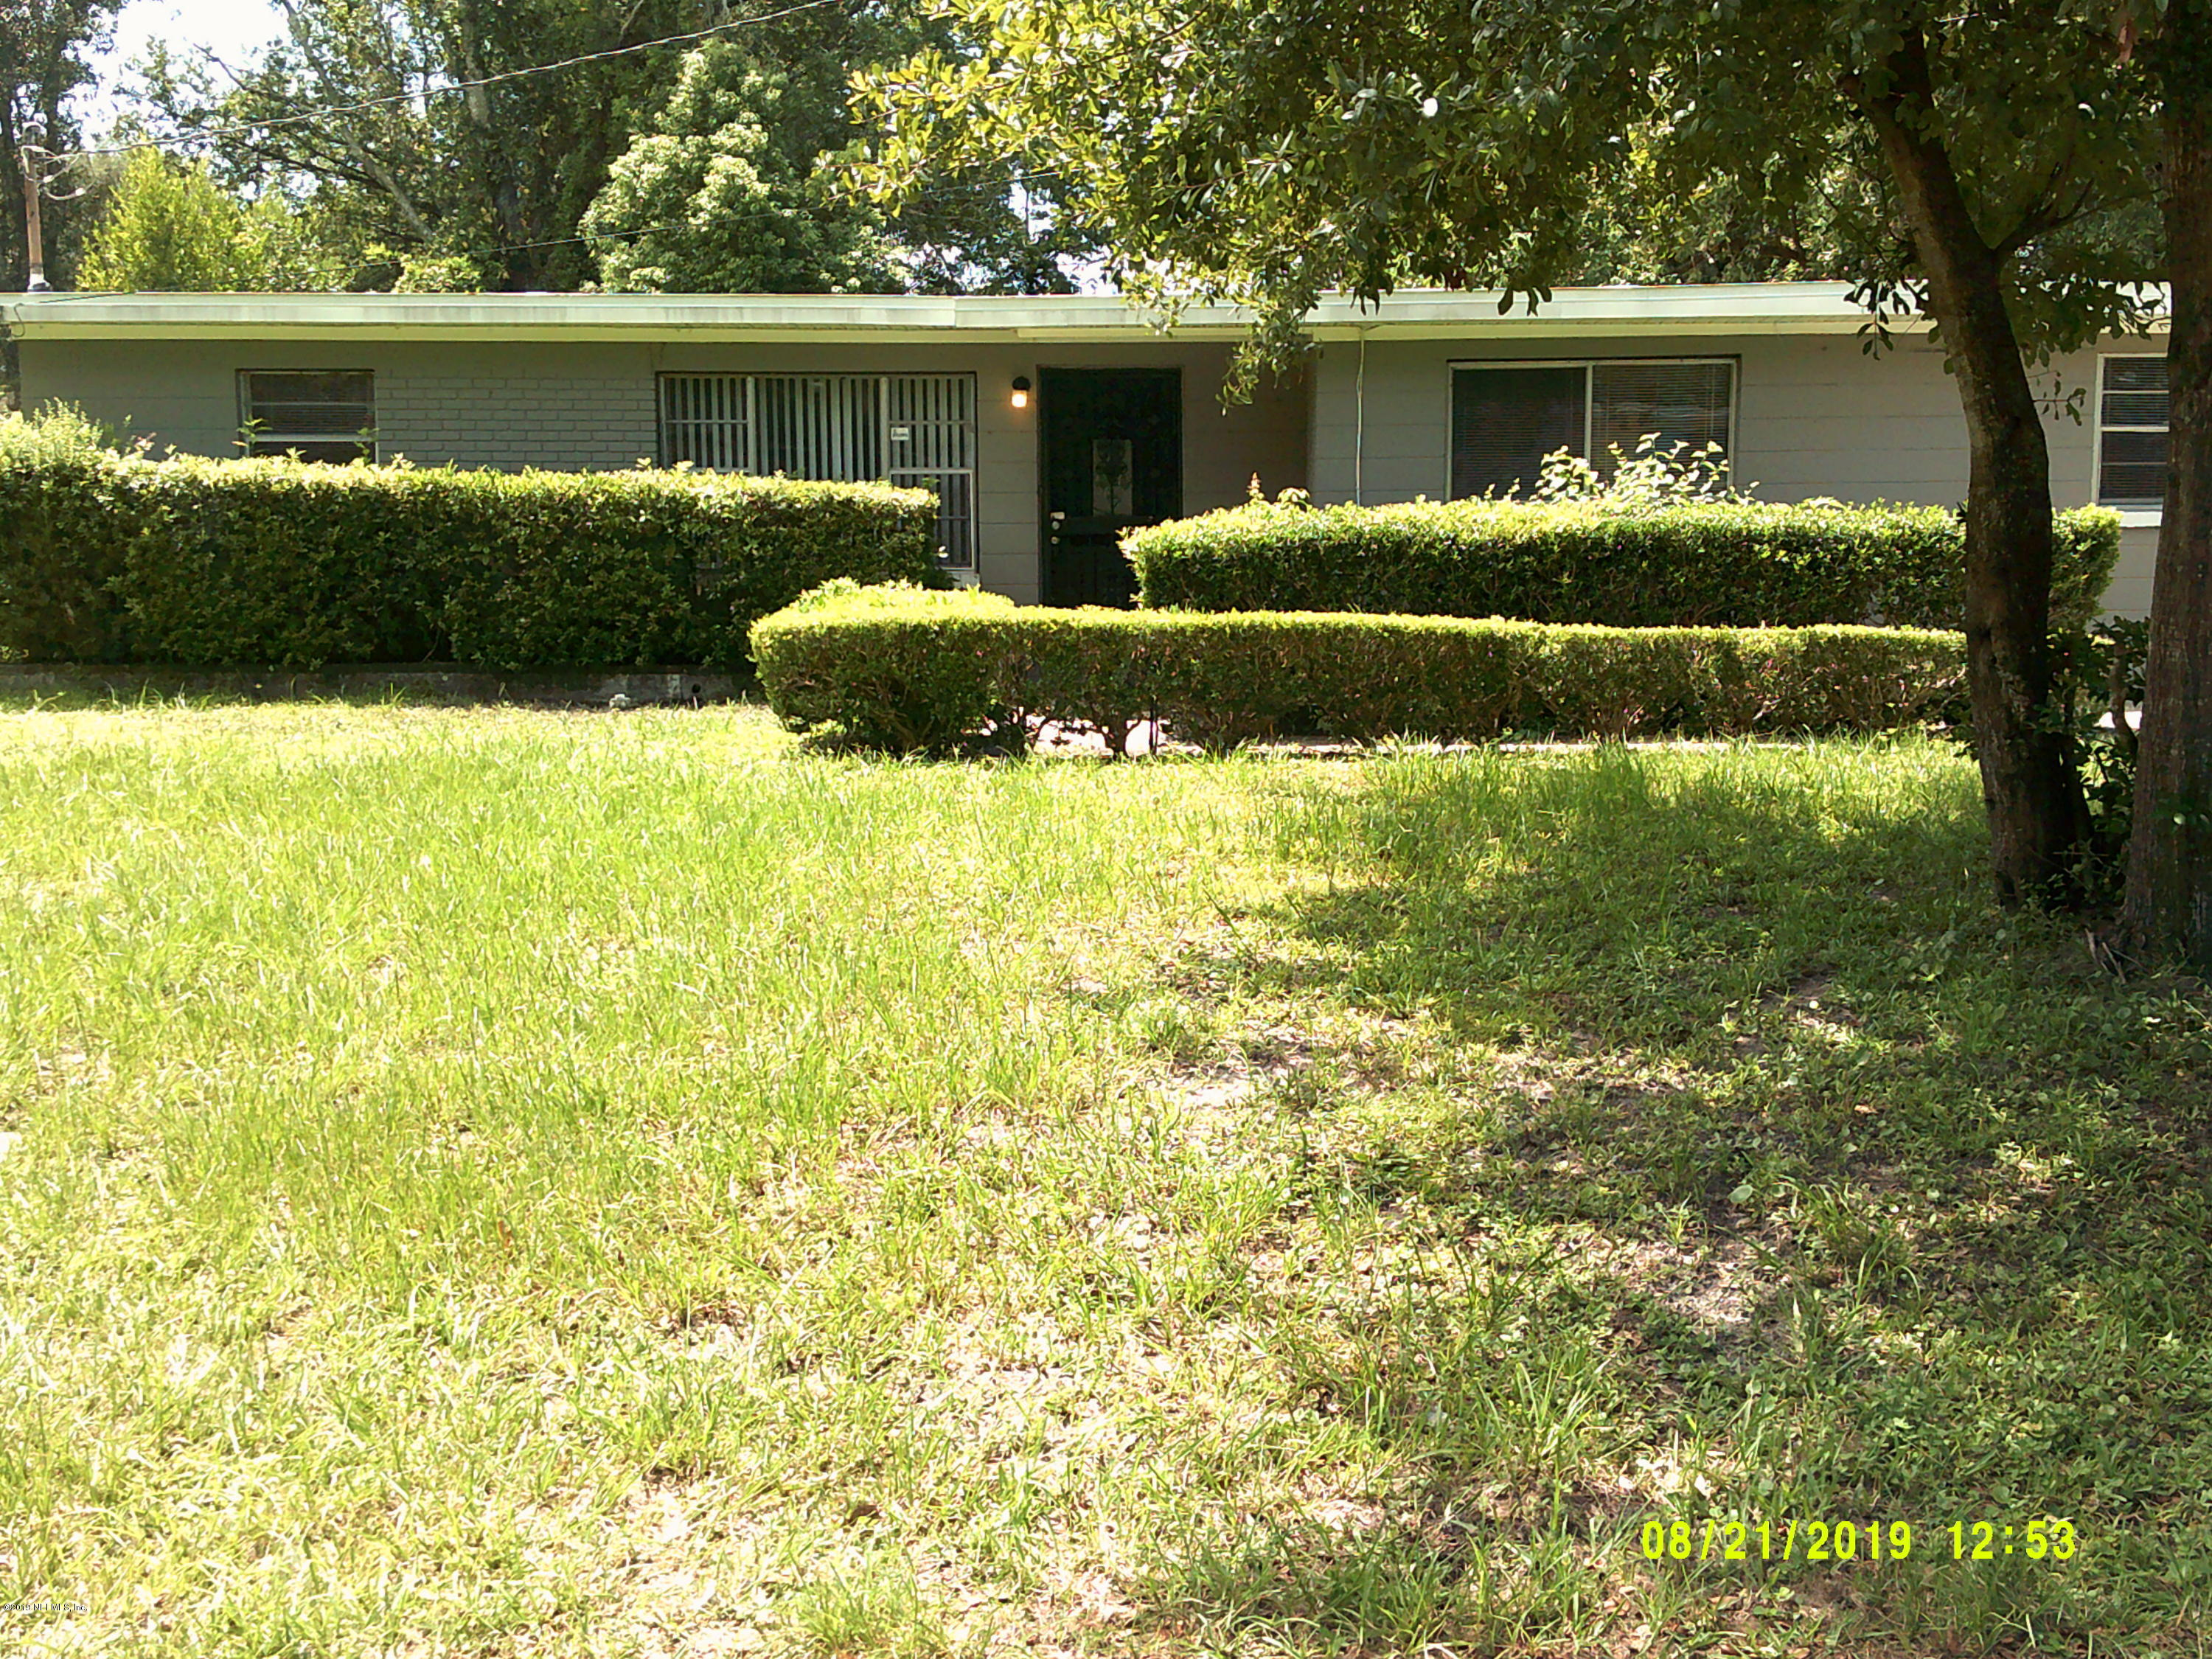 2416 PALMDALE, JACKSONVILLE, FLORIDA 32208, 3 Bedrooms Bedrooms, ,2 BathroomsBathrooms,Rental,For sale,PALMDALE,1026690